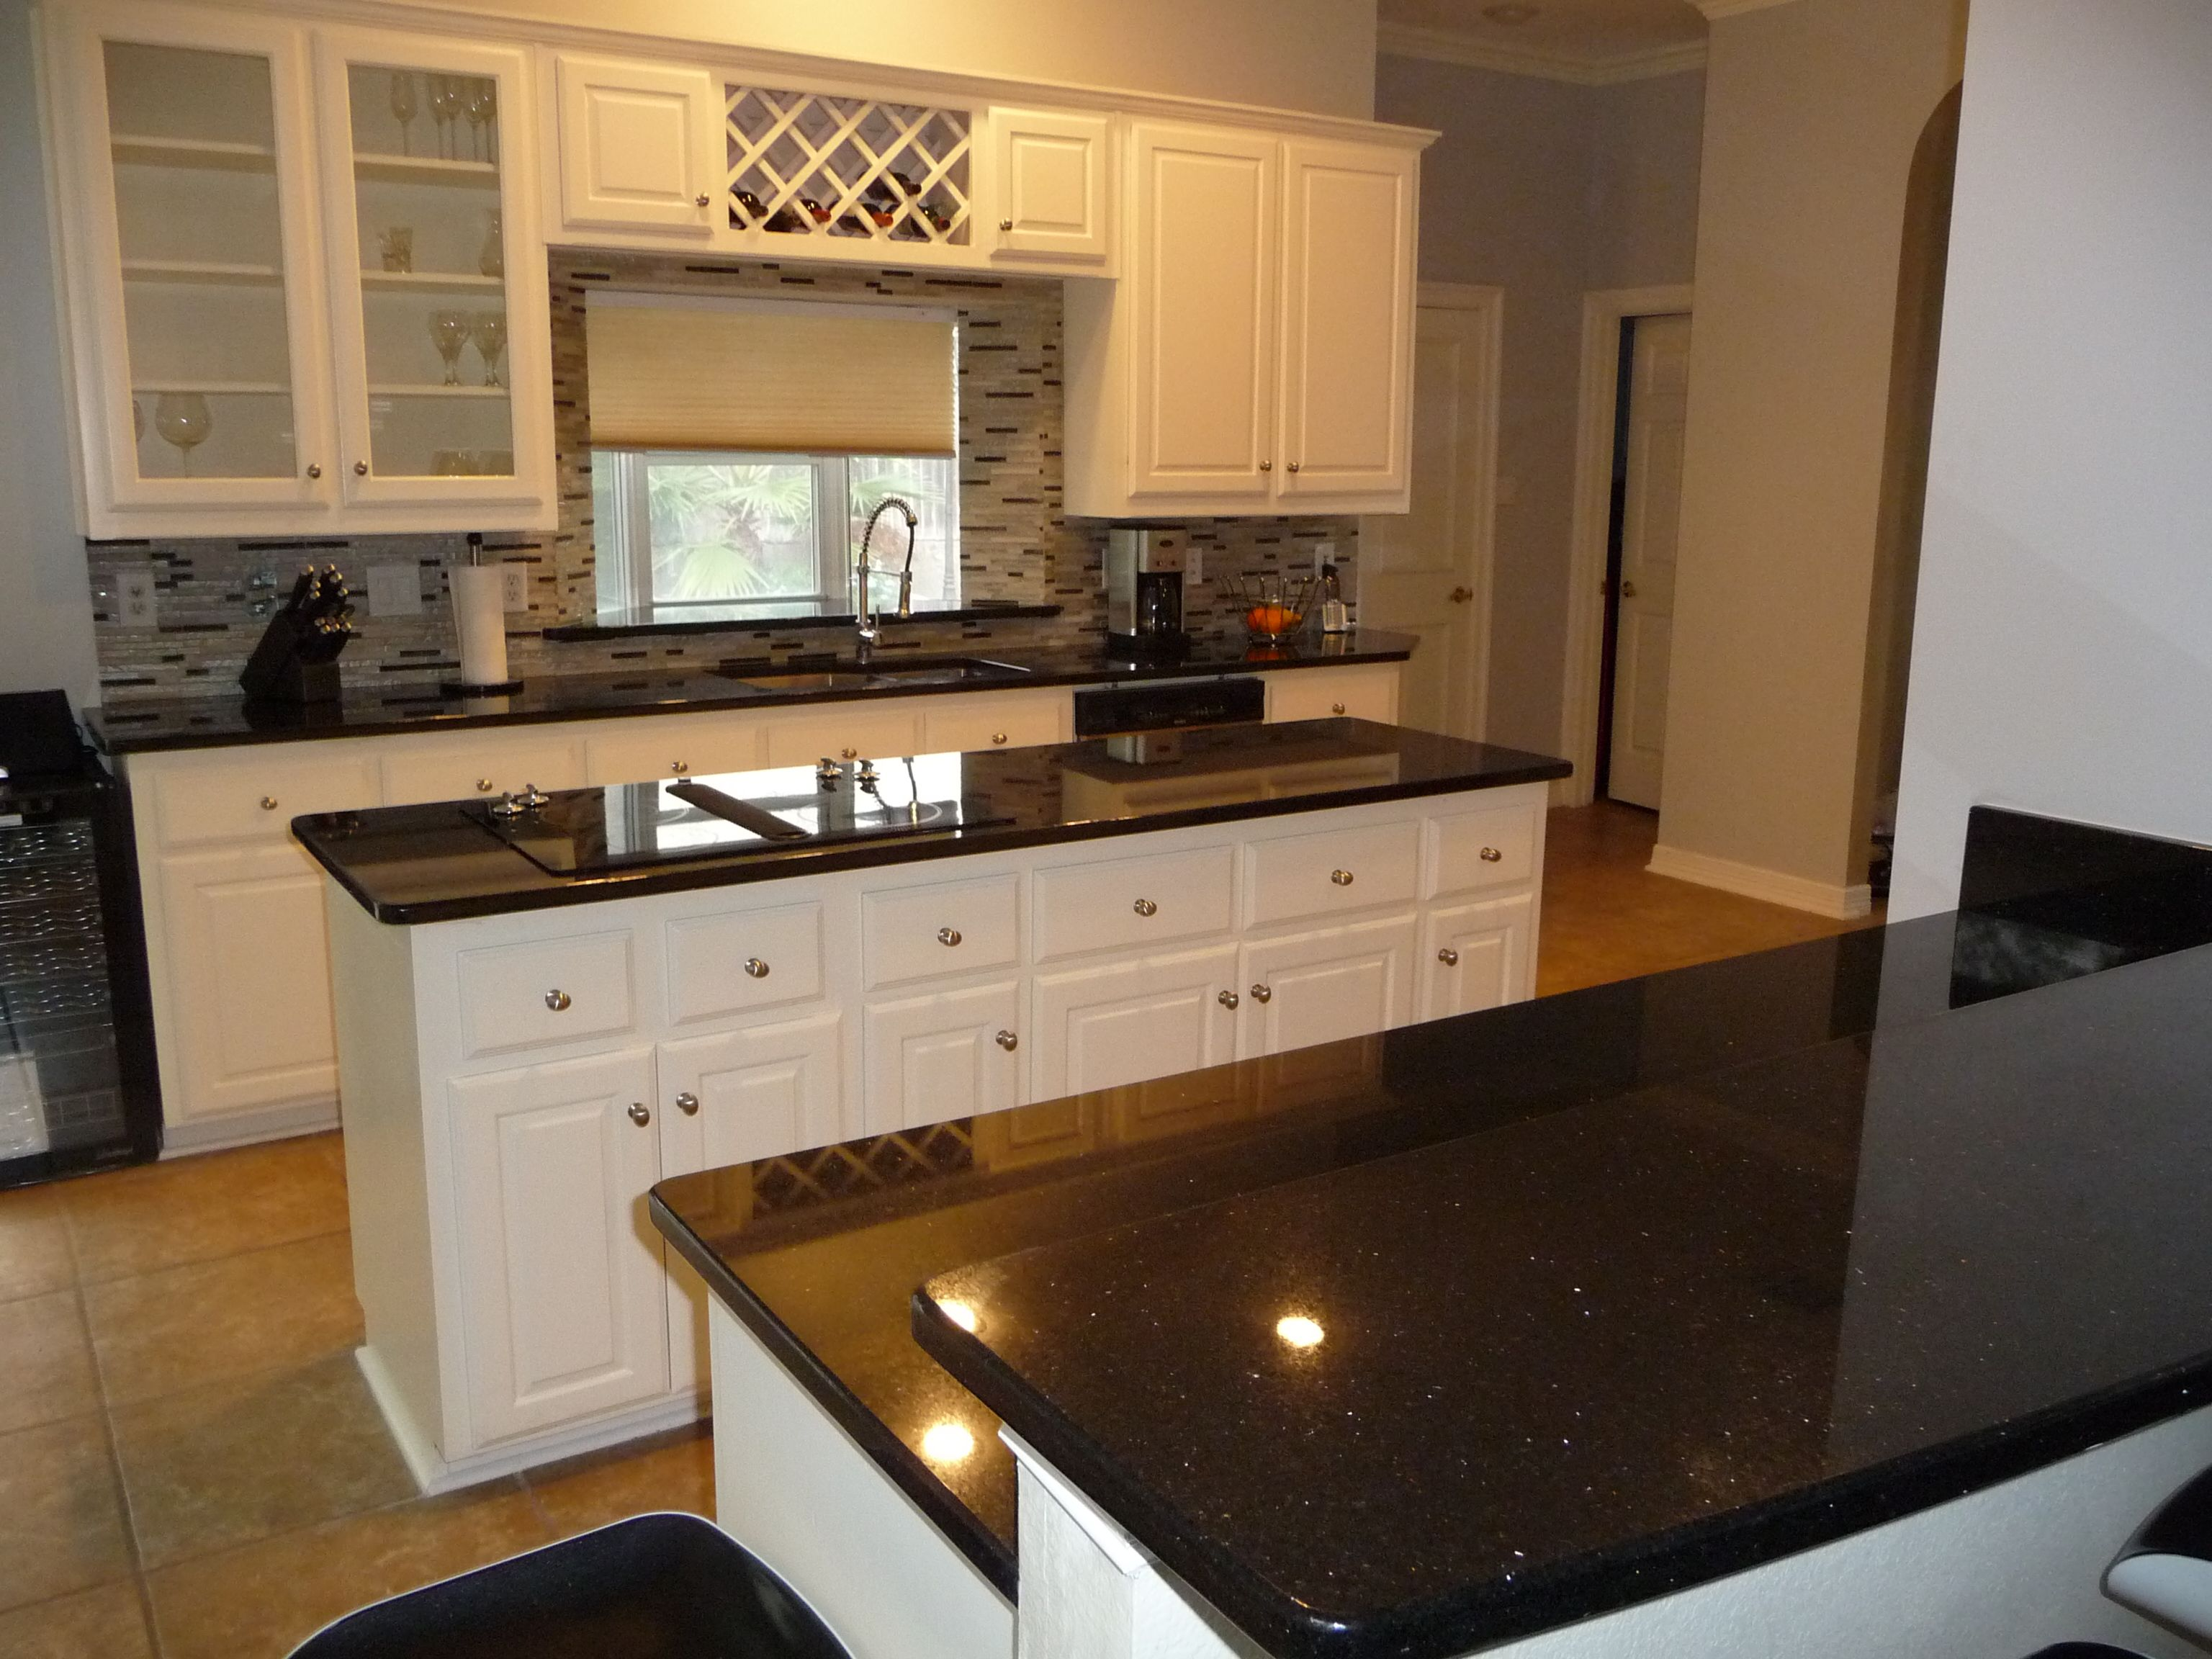 Black Kitchen Countertops French Style Furniture Love And White Kitchens Galaxy Granite